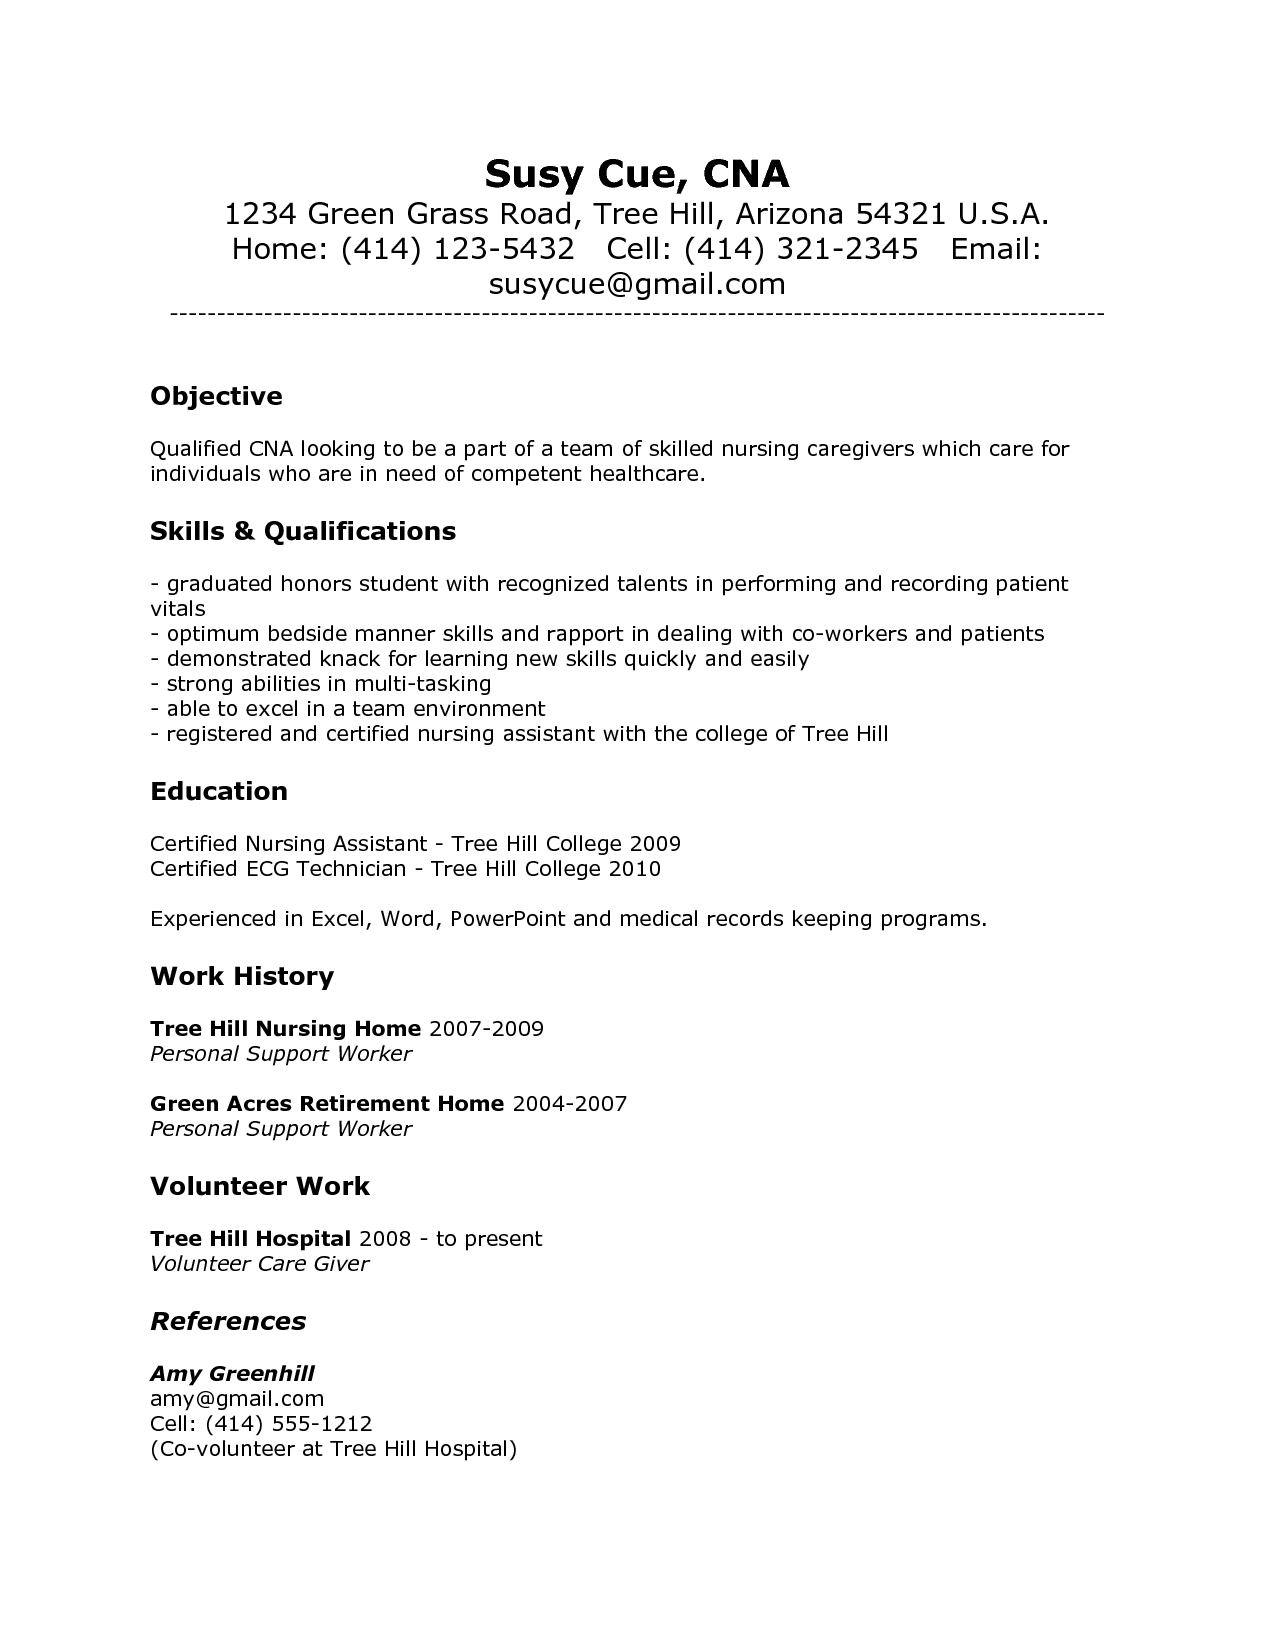 cna cover letter with little experience - resume sample cna job duties resume resume sample